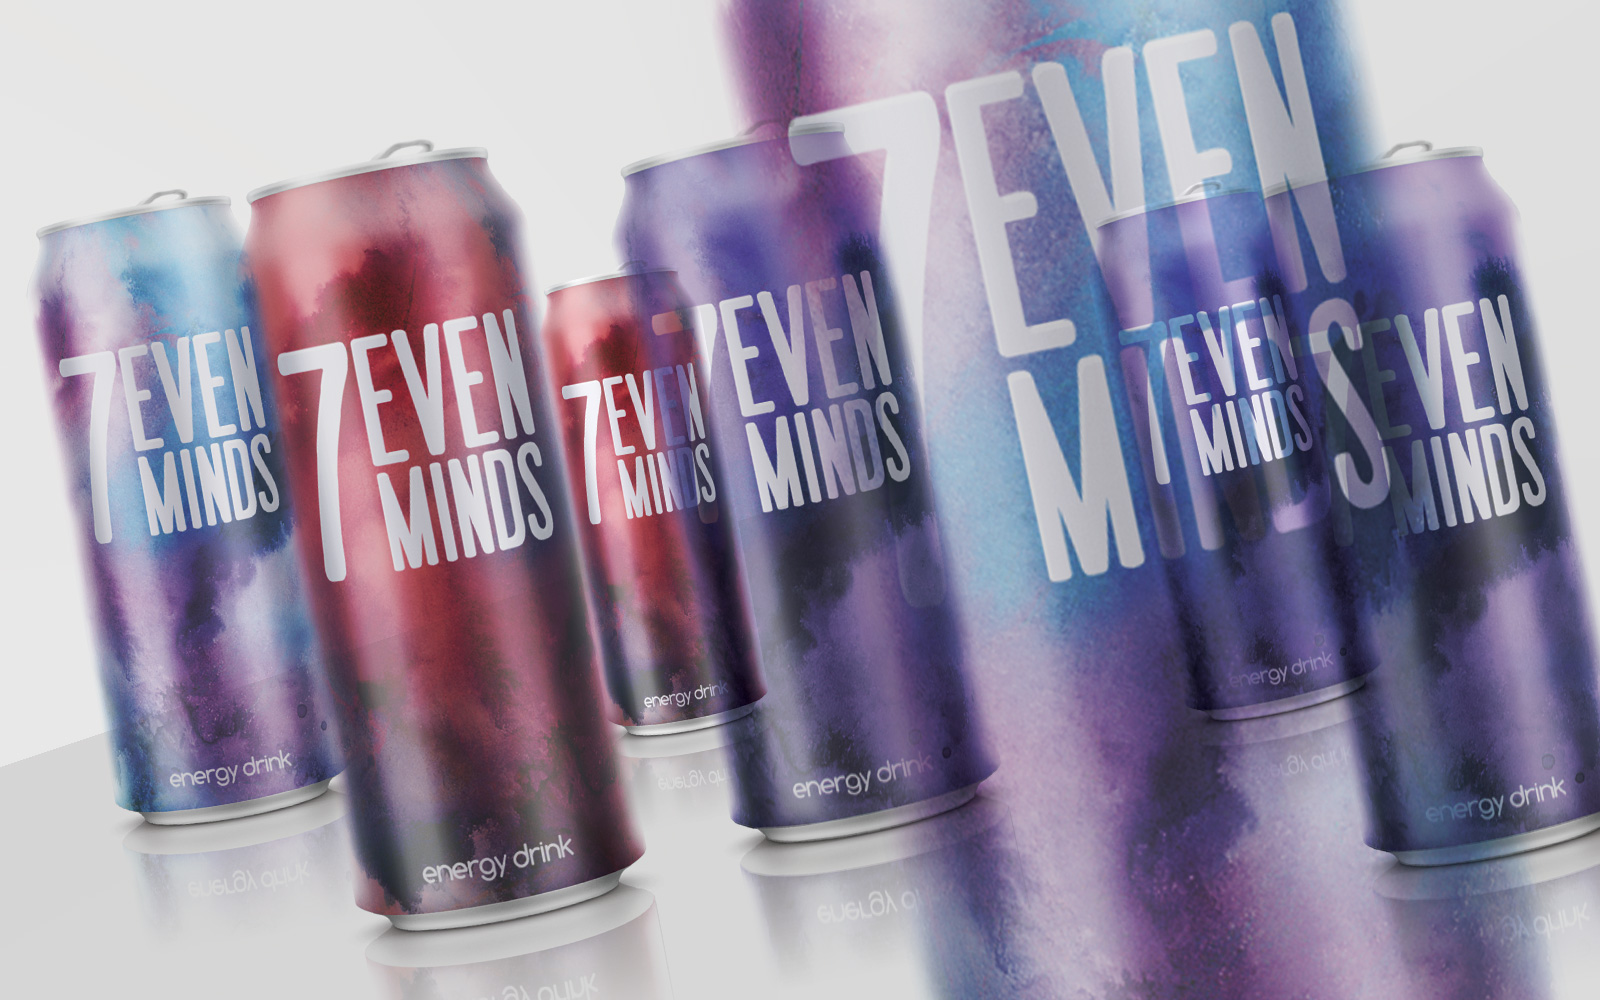 7minds packaging and brand identity (limited edition)